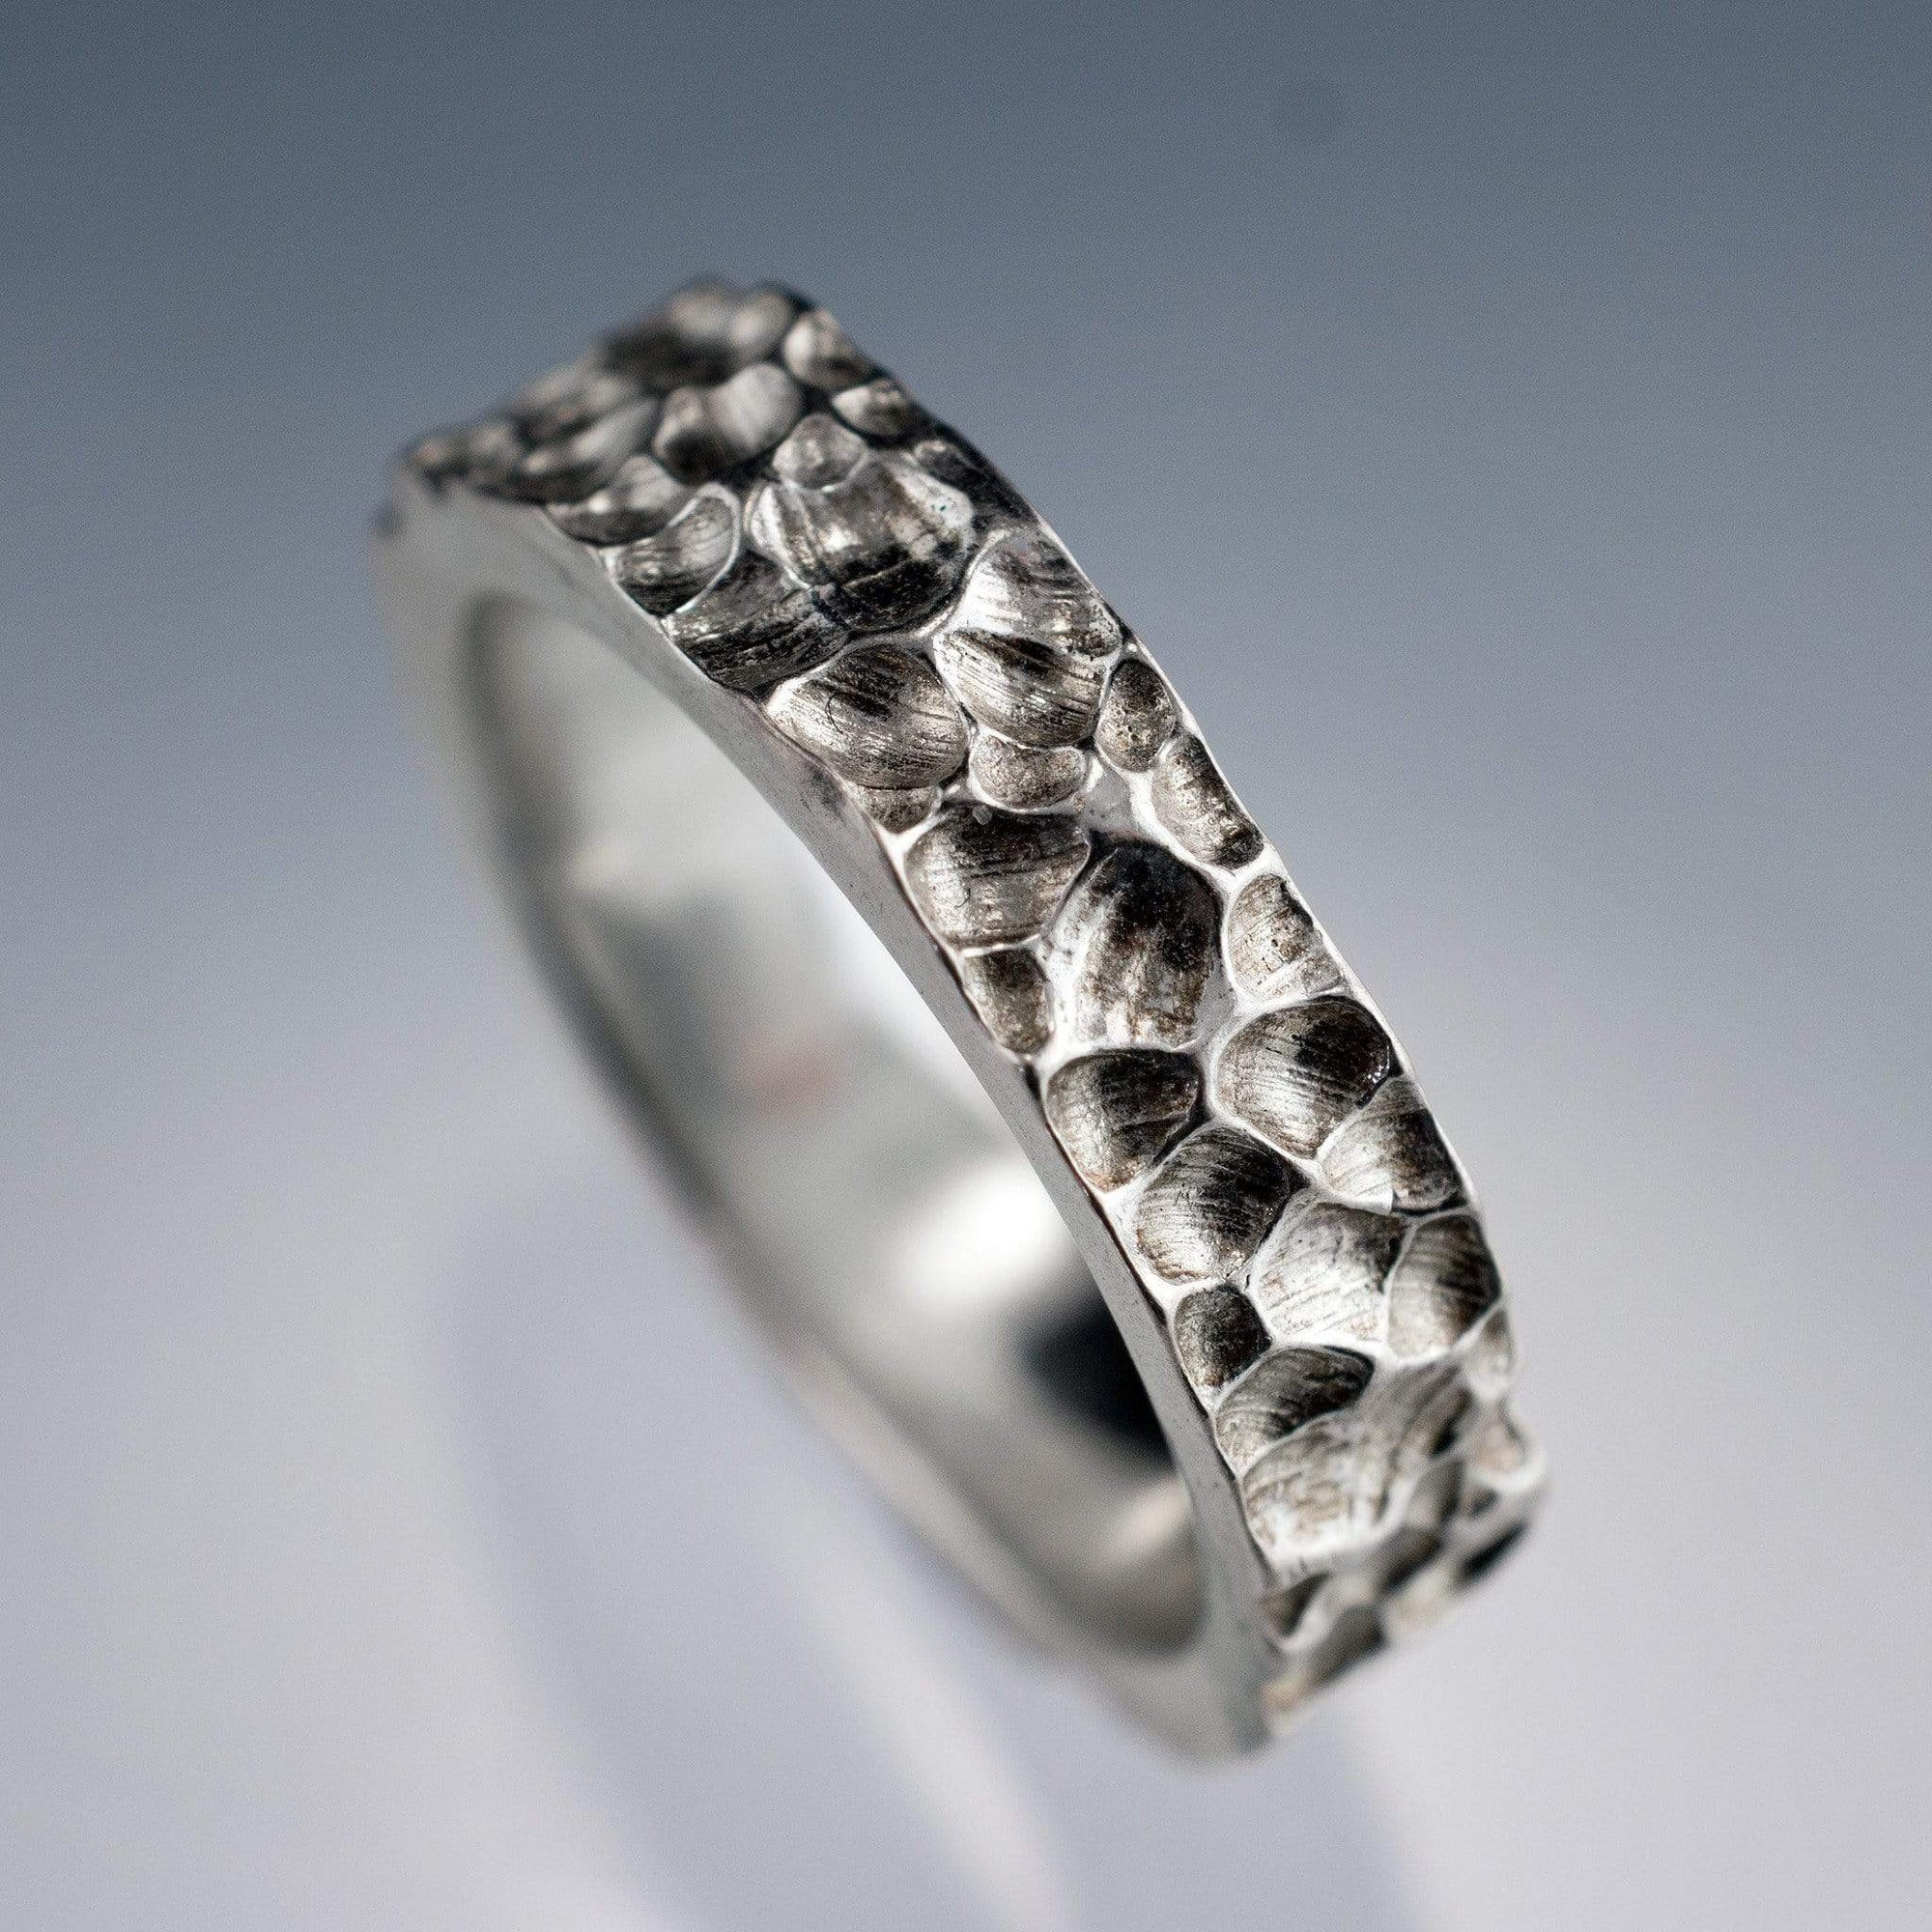 Crater Texture Wedding Ring Rustic Wedding Band - by Nodeform